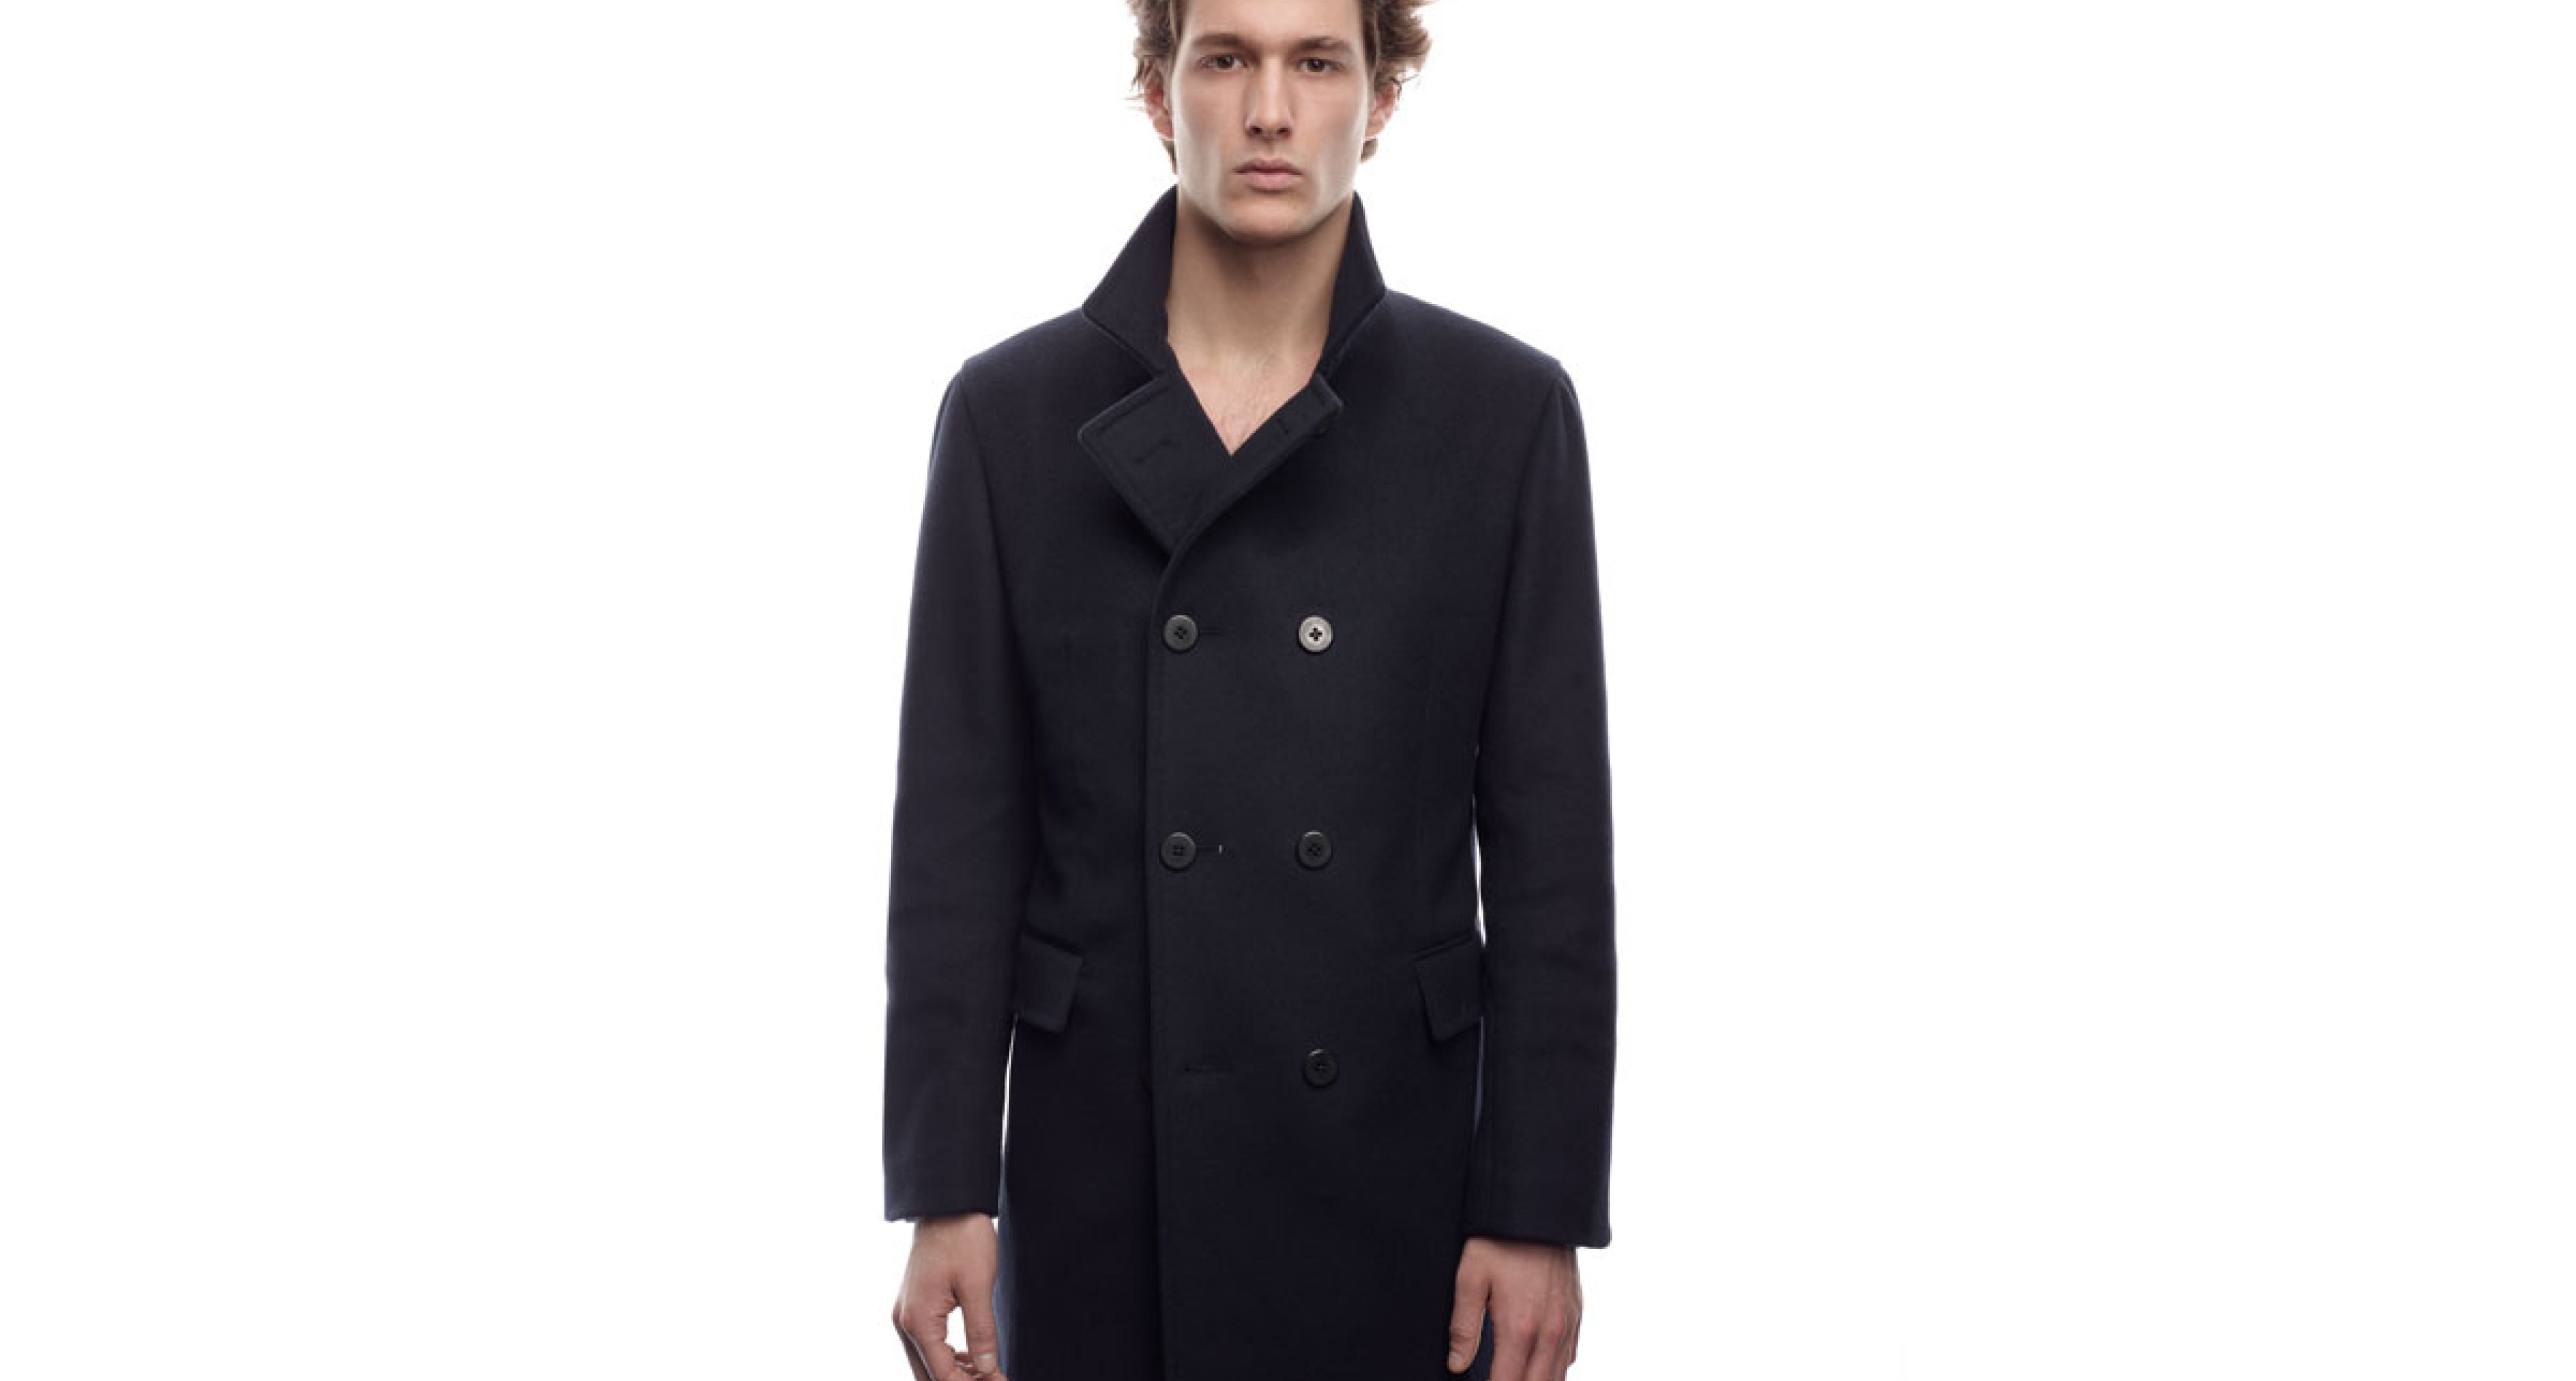 Éclectic menswear combines classic looks with high-tech materials